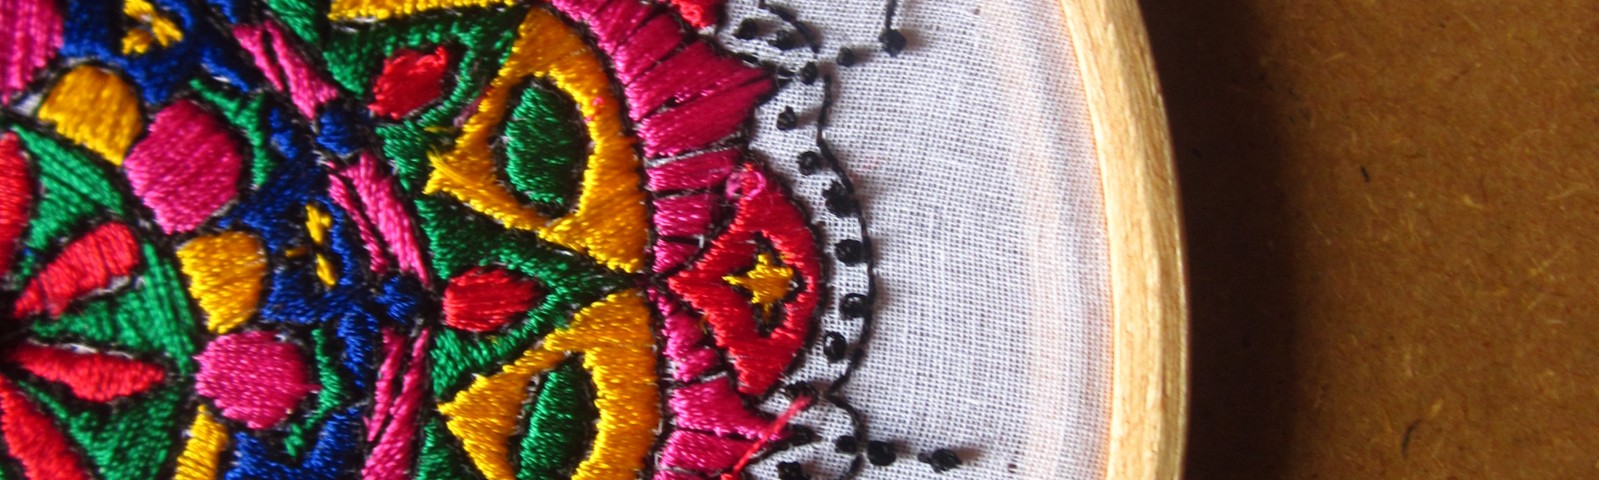 Embroidery a forgotten craft to increase eye hand coordination